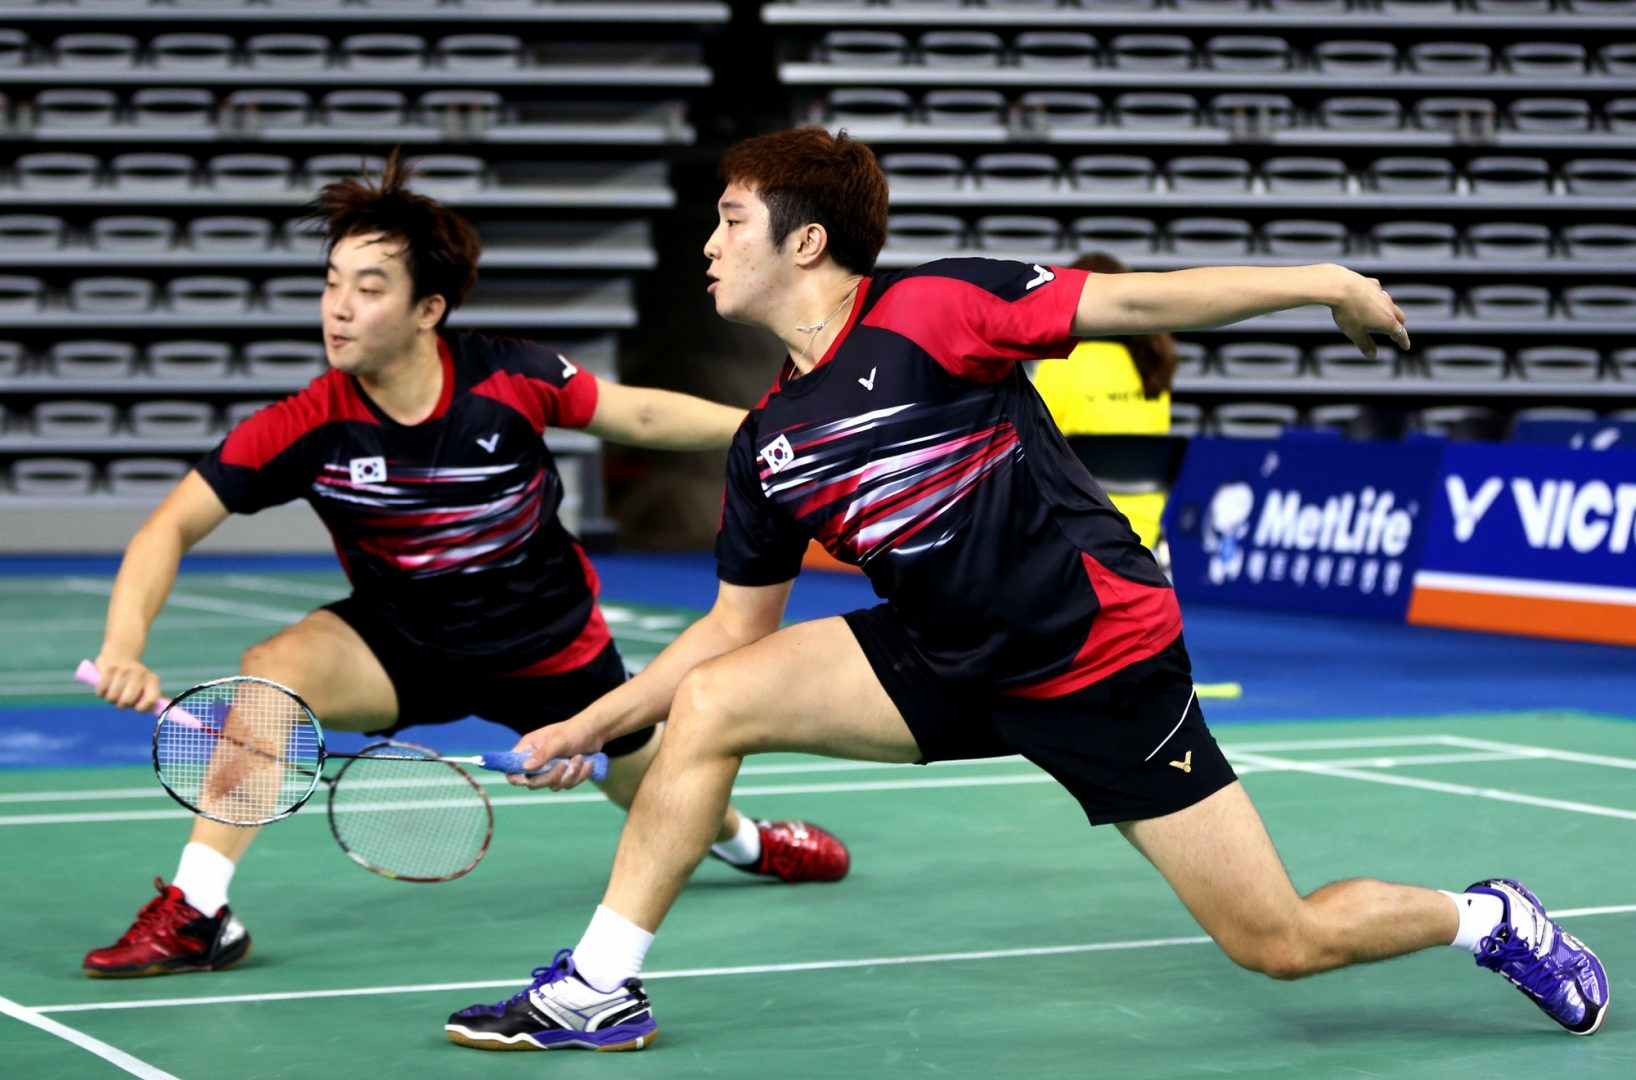 SKYCITY BADMINTON OPEN ATTRACTS WORLD CLASS FIELD Badminton